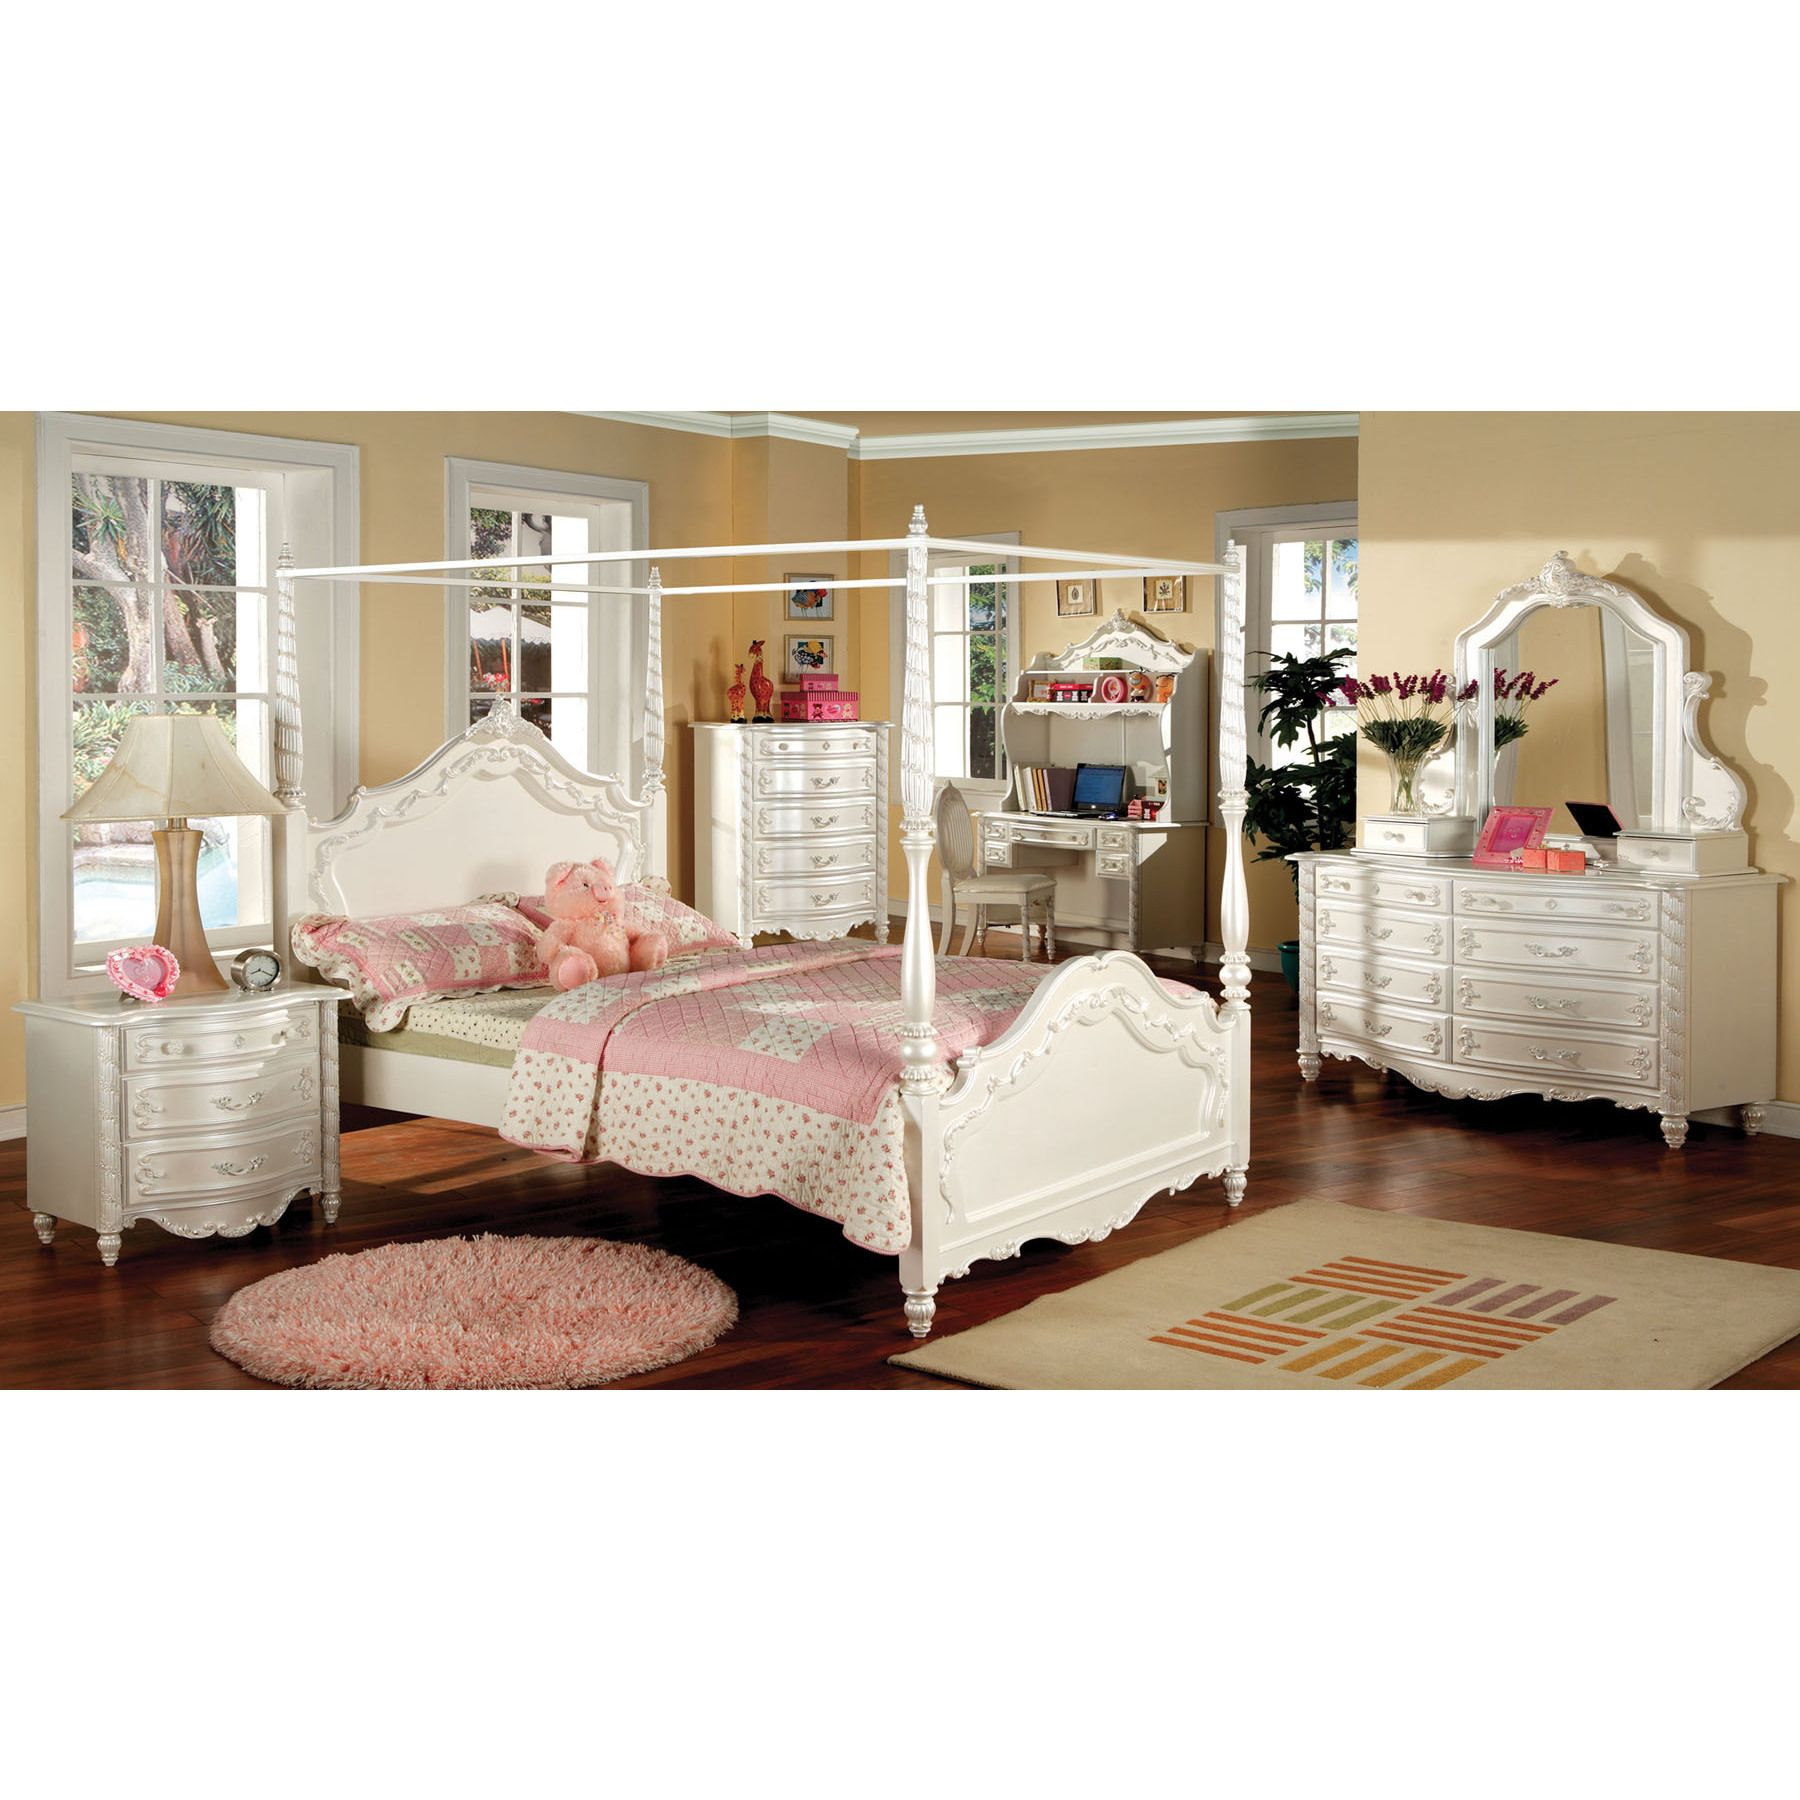 White Twin Bedroom Sets sofia fairy tale style pearl white 4-piece twin bedroom set